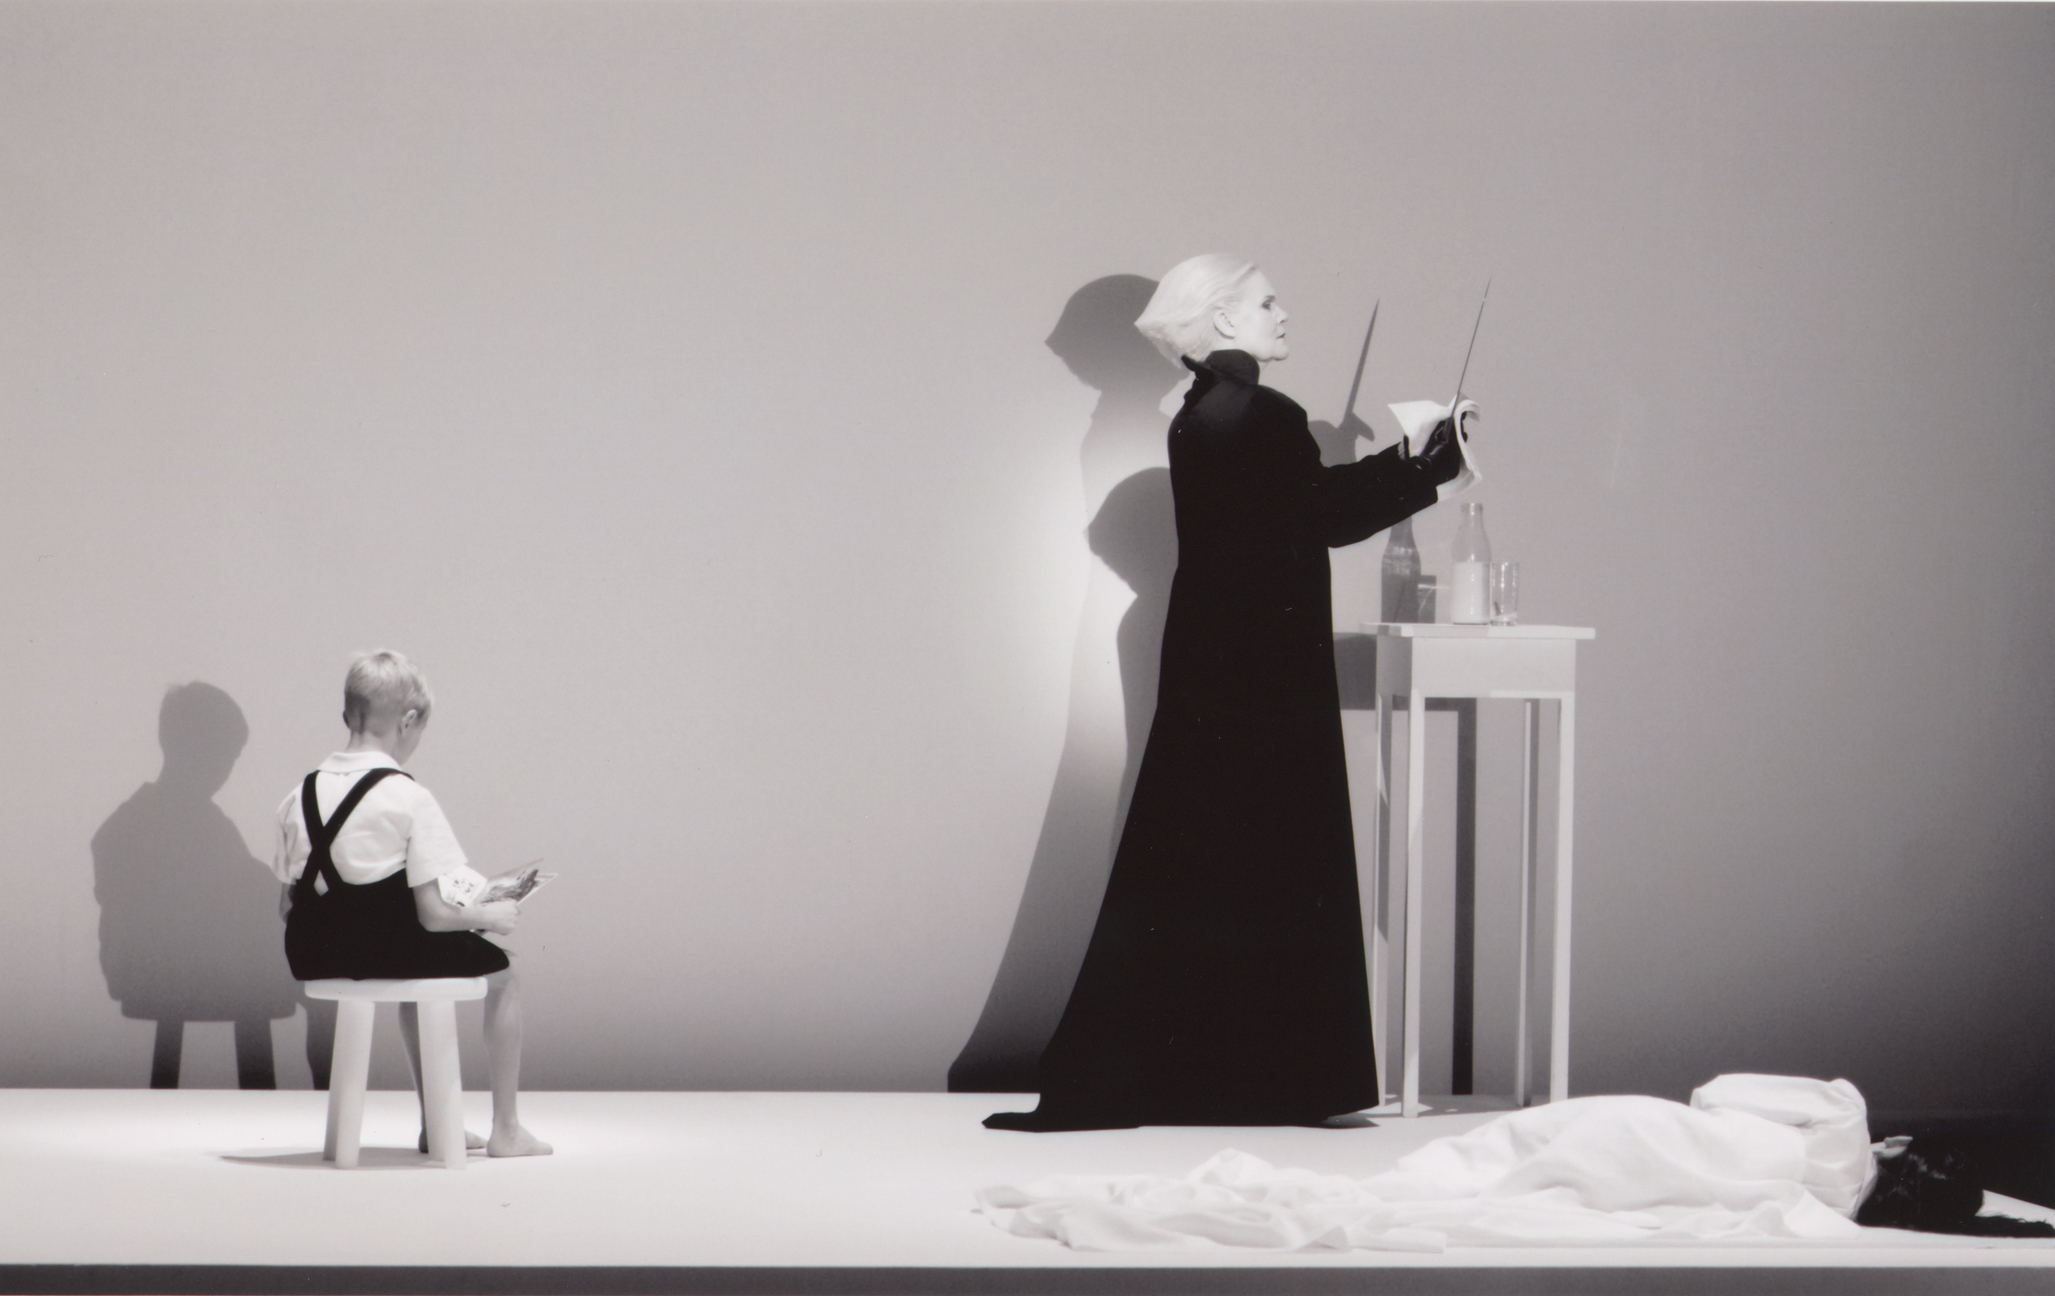 Anja Silja performing 'Murder Scene' from Deafman Glance as a Prologue to Expectation, Berlin, 2004